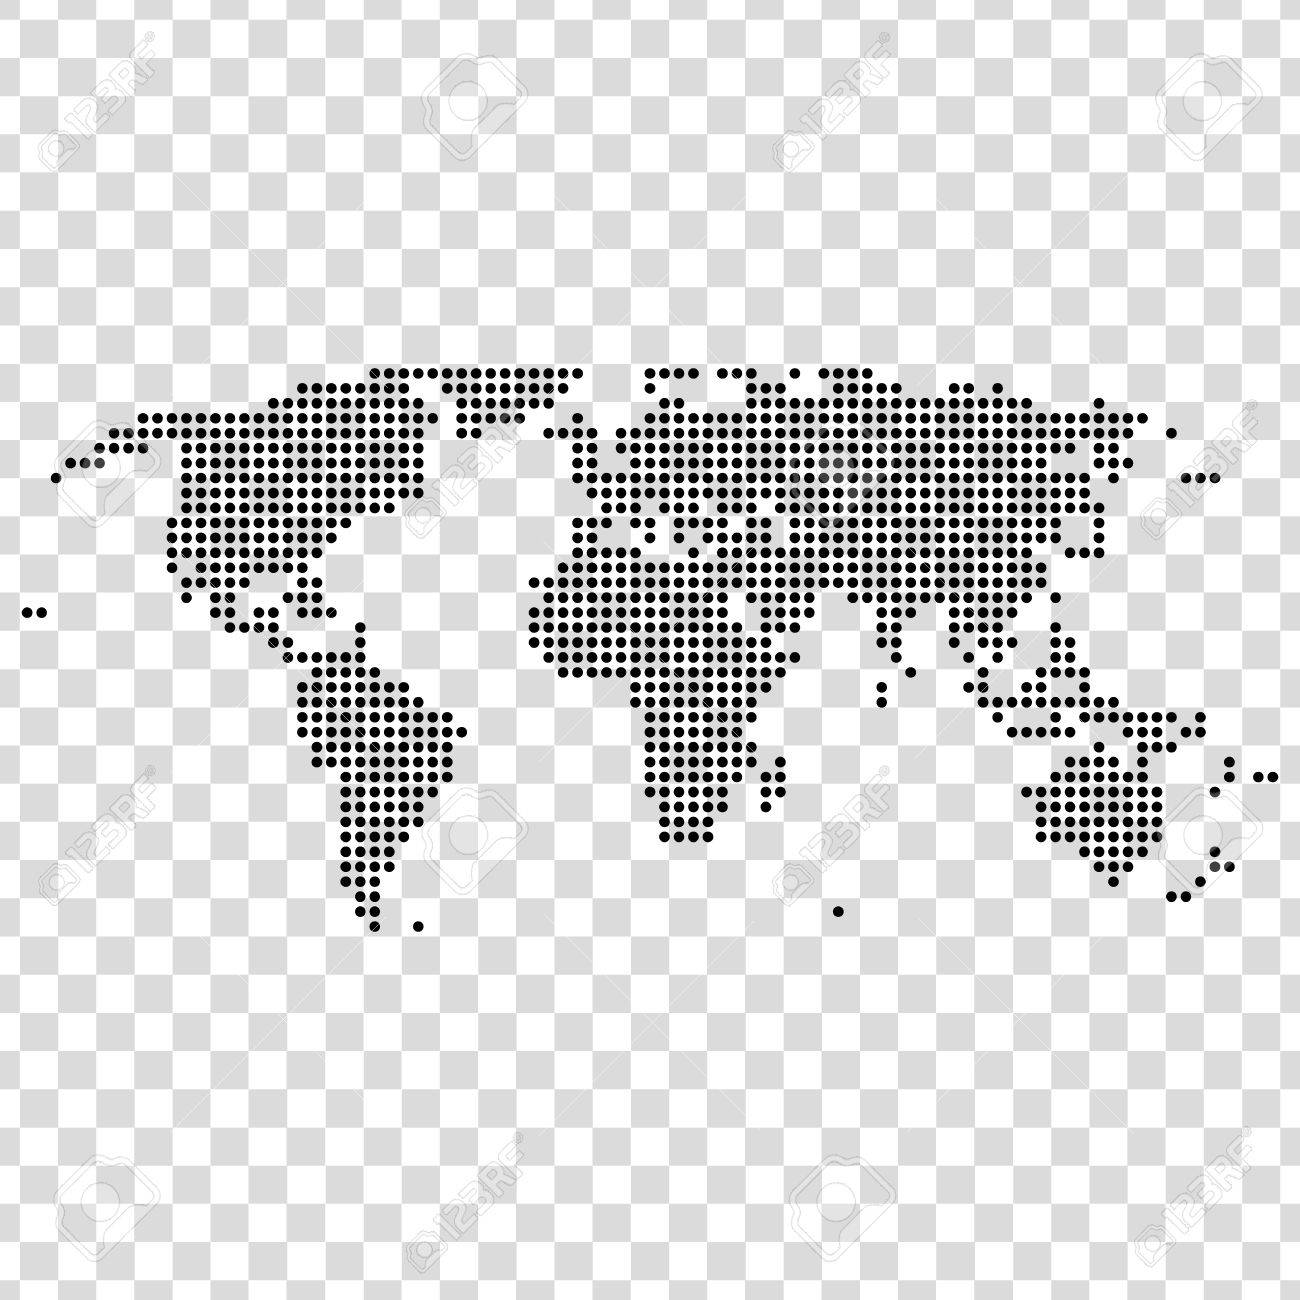 Black dots world map on transparent background royalty free black dots world map on transparent background stock vector 68223799 gumiabroncs Images